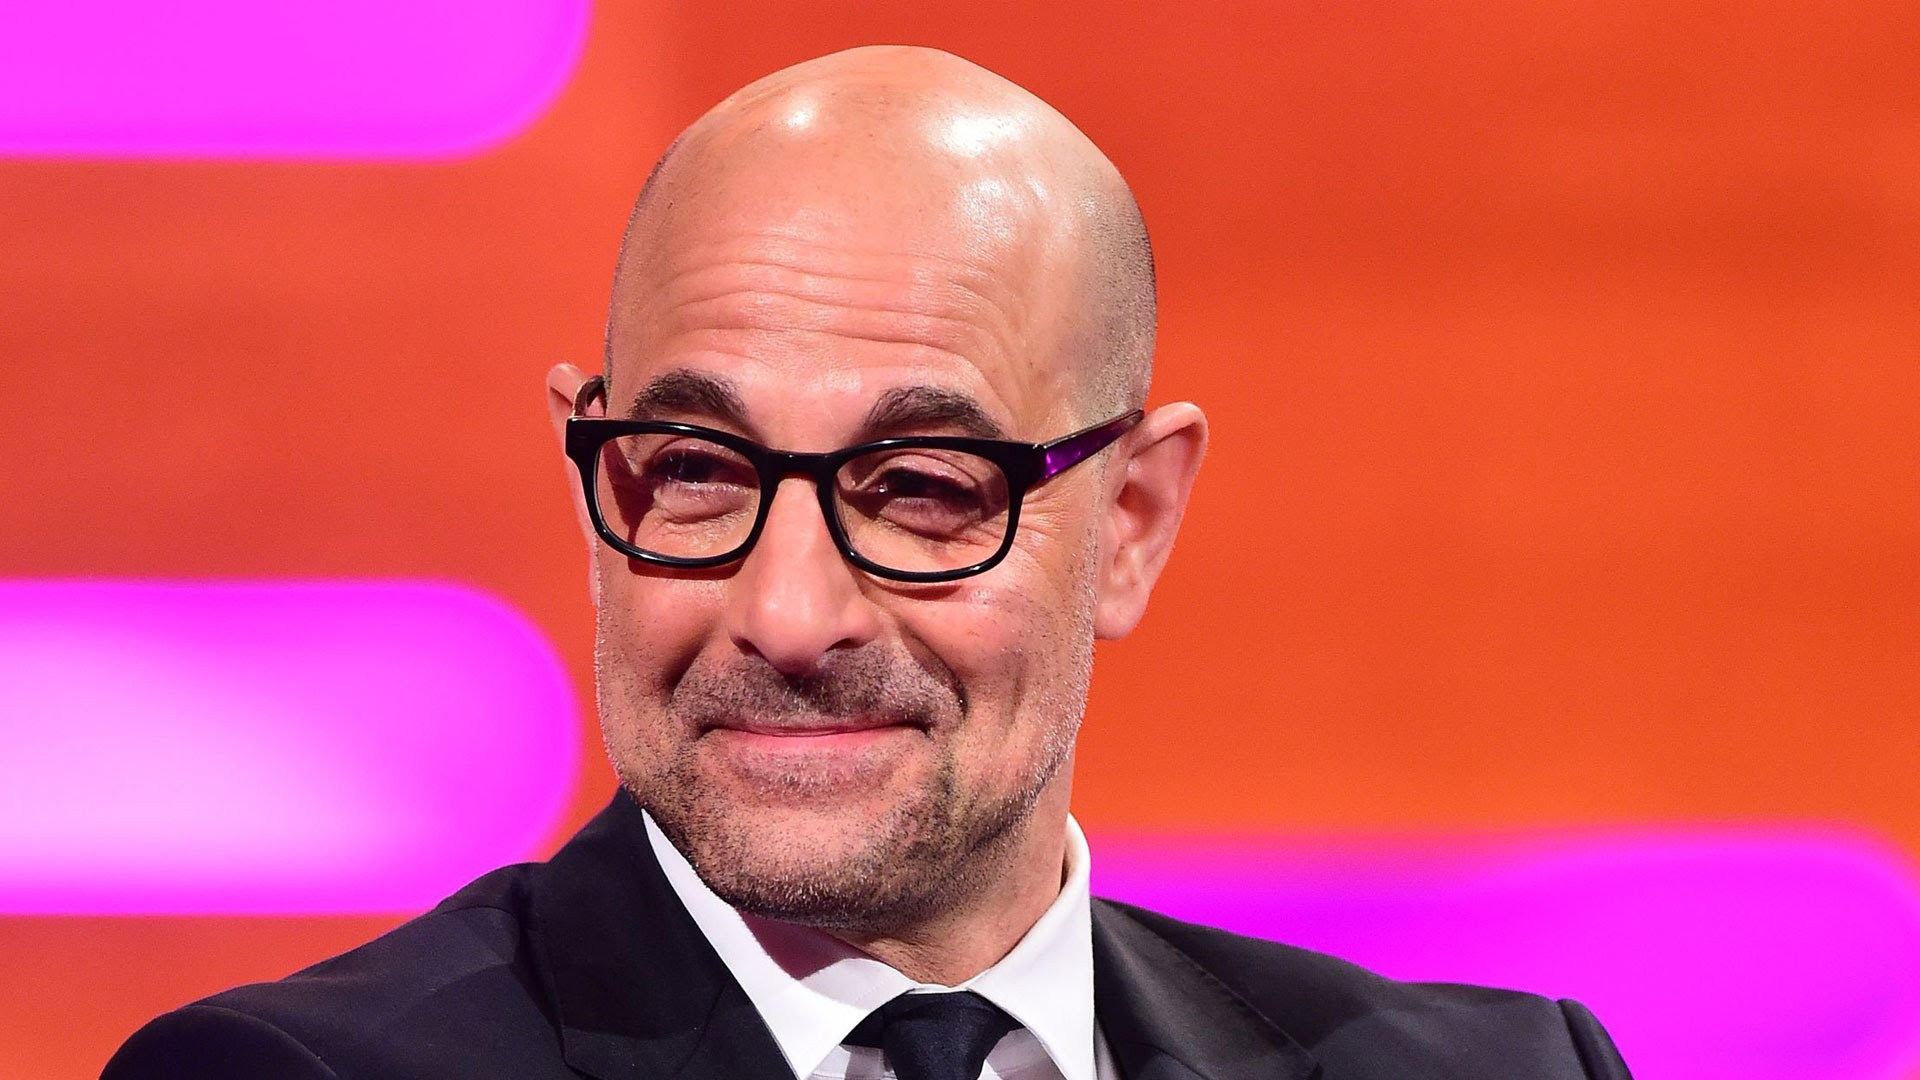 Stanley Tucci Hd